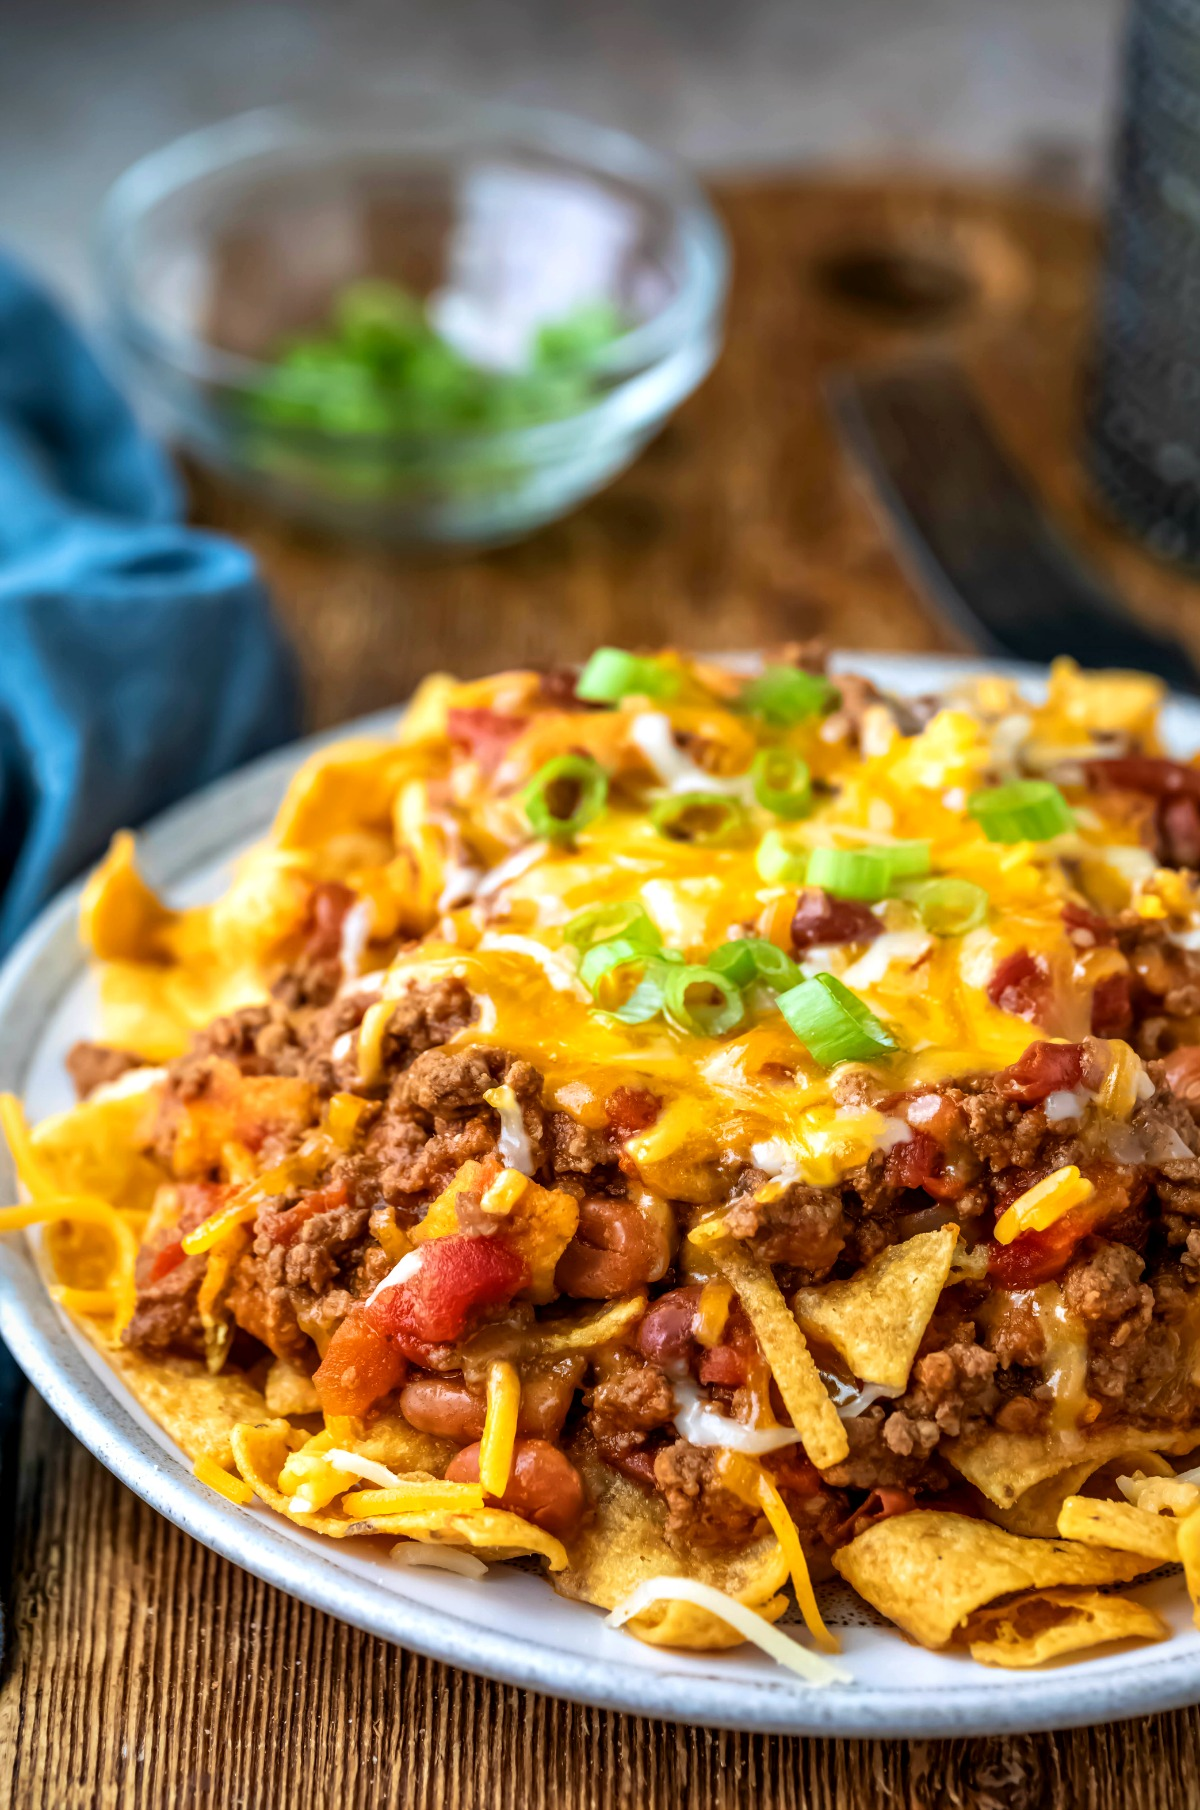 Frito chili pie topped with sliced green onions and melted cheese.